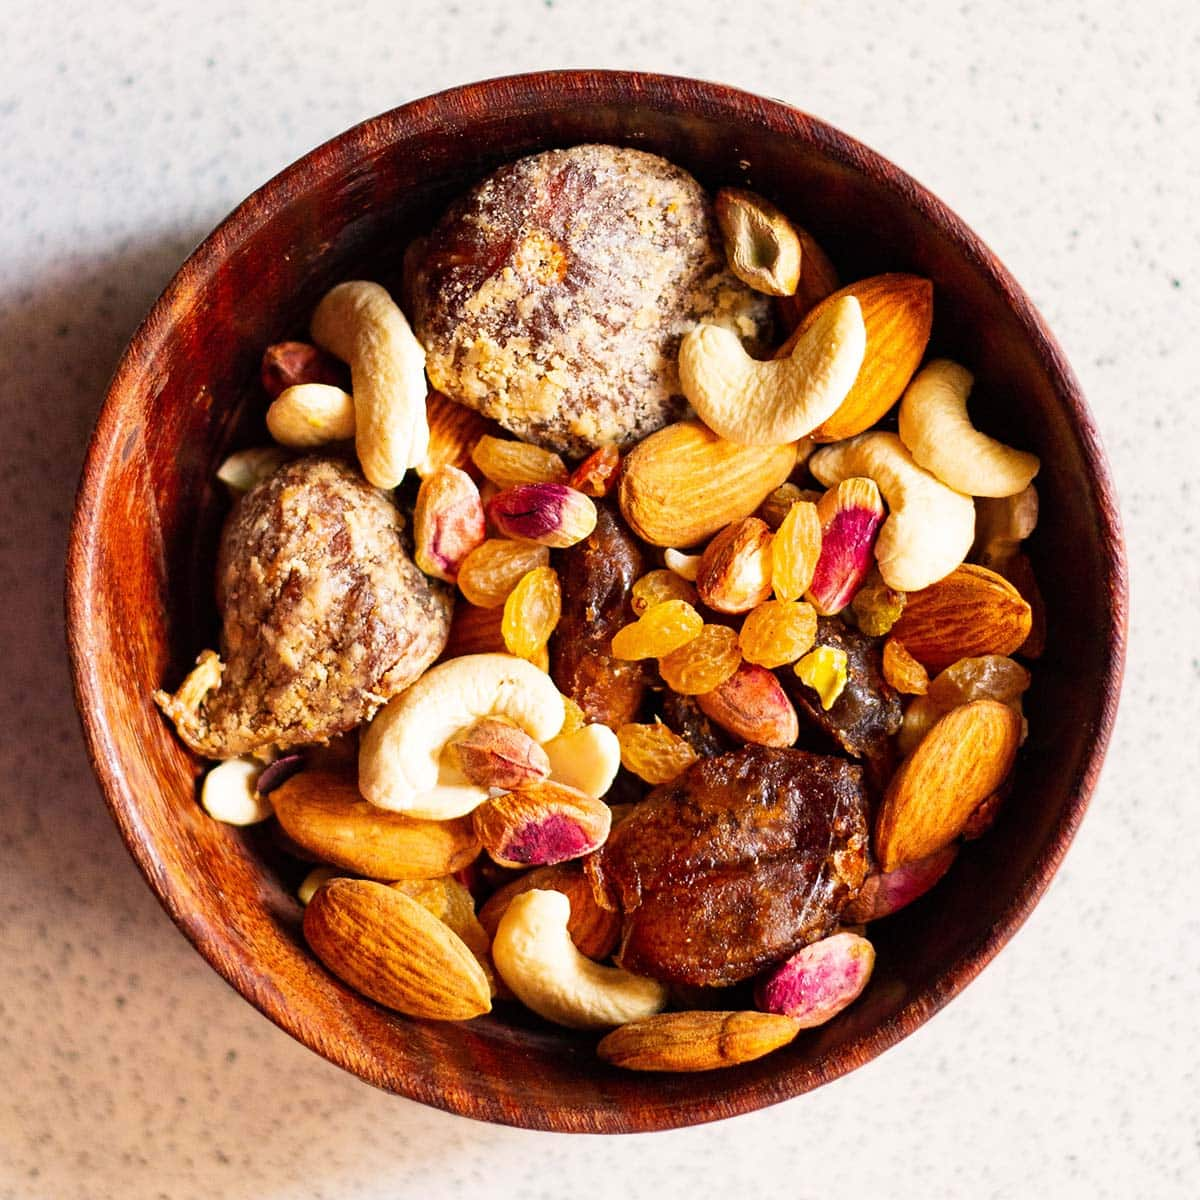 various nuts and dry fruits in a woodern bowl on a marble surface